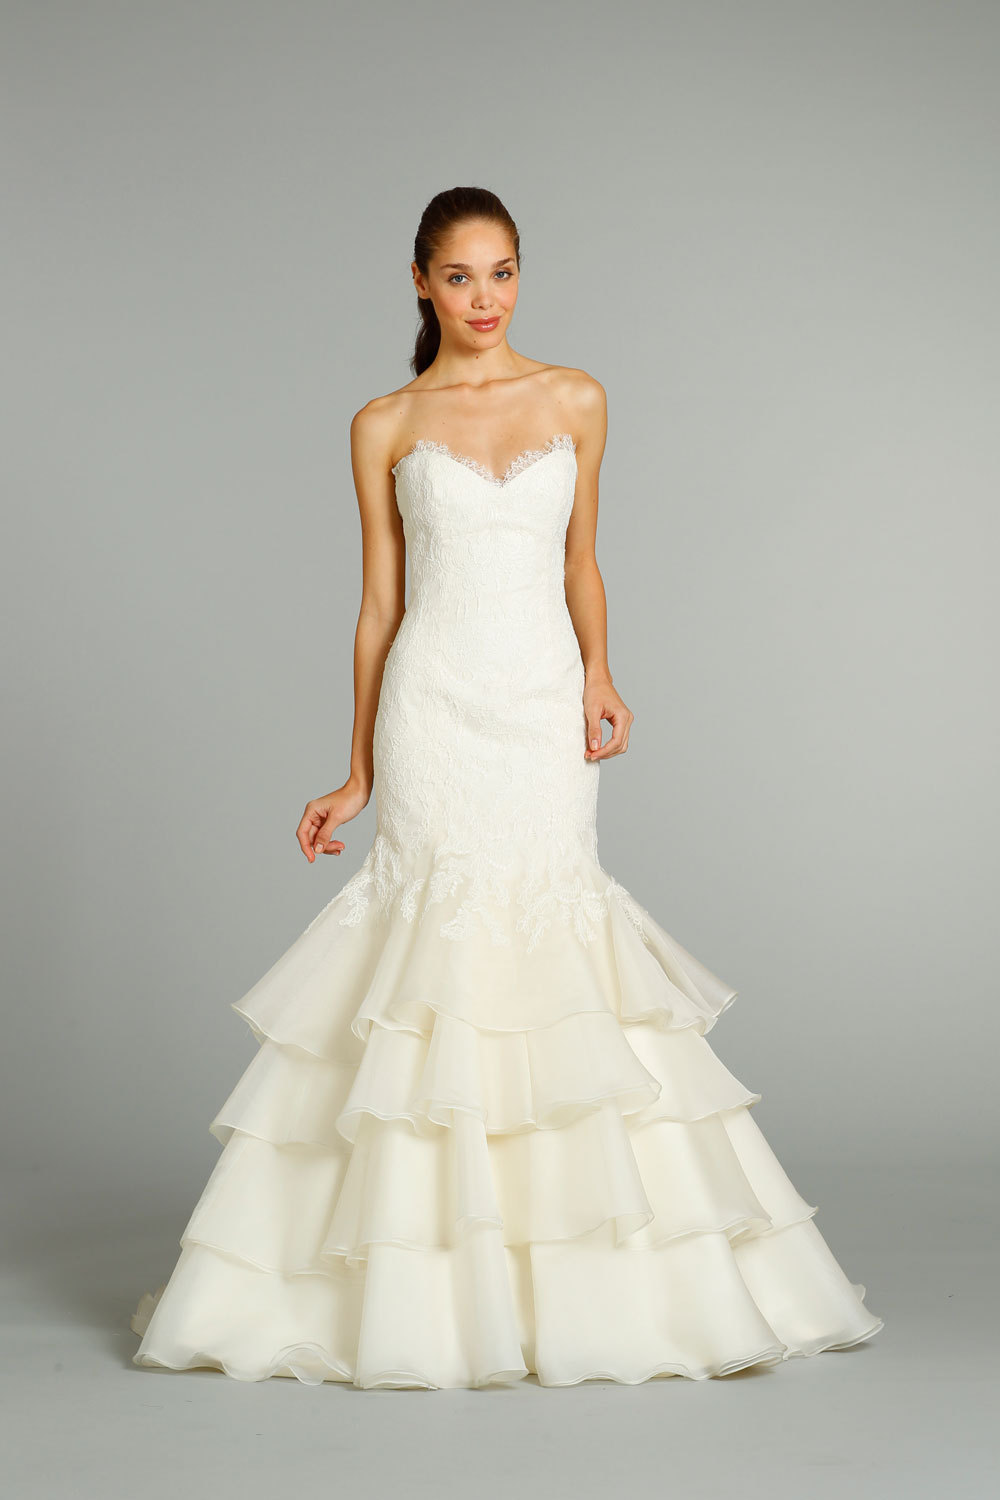 Fall-2012-wedding-dress-jim-hjelm-bridal-gowns-8255.full